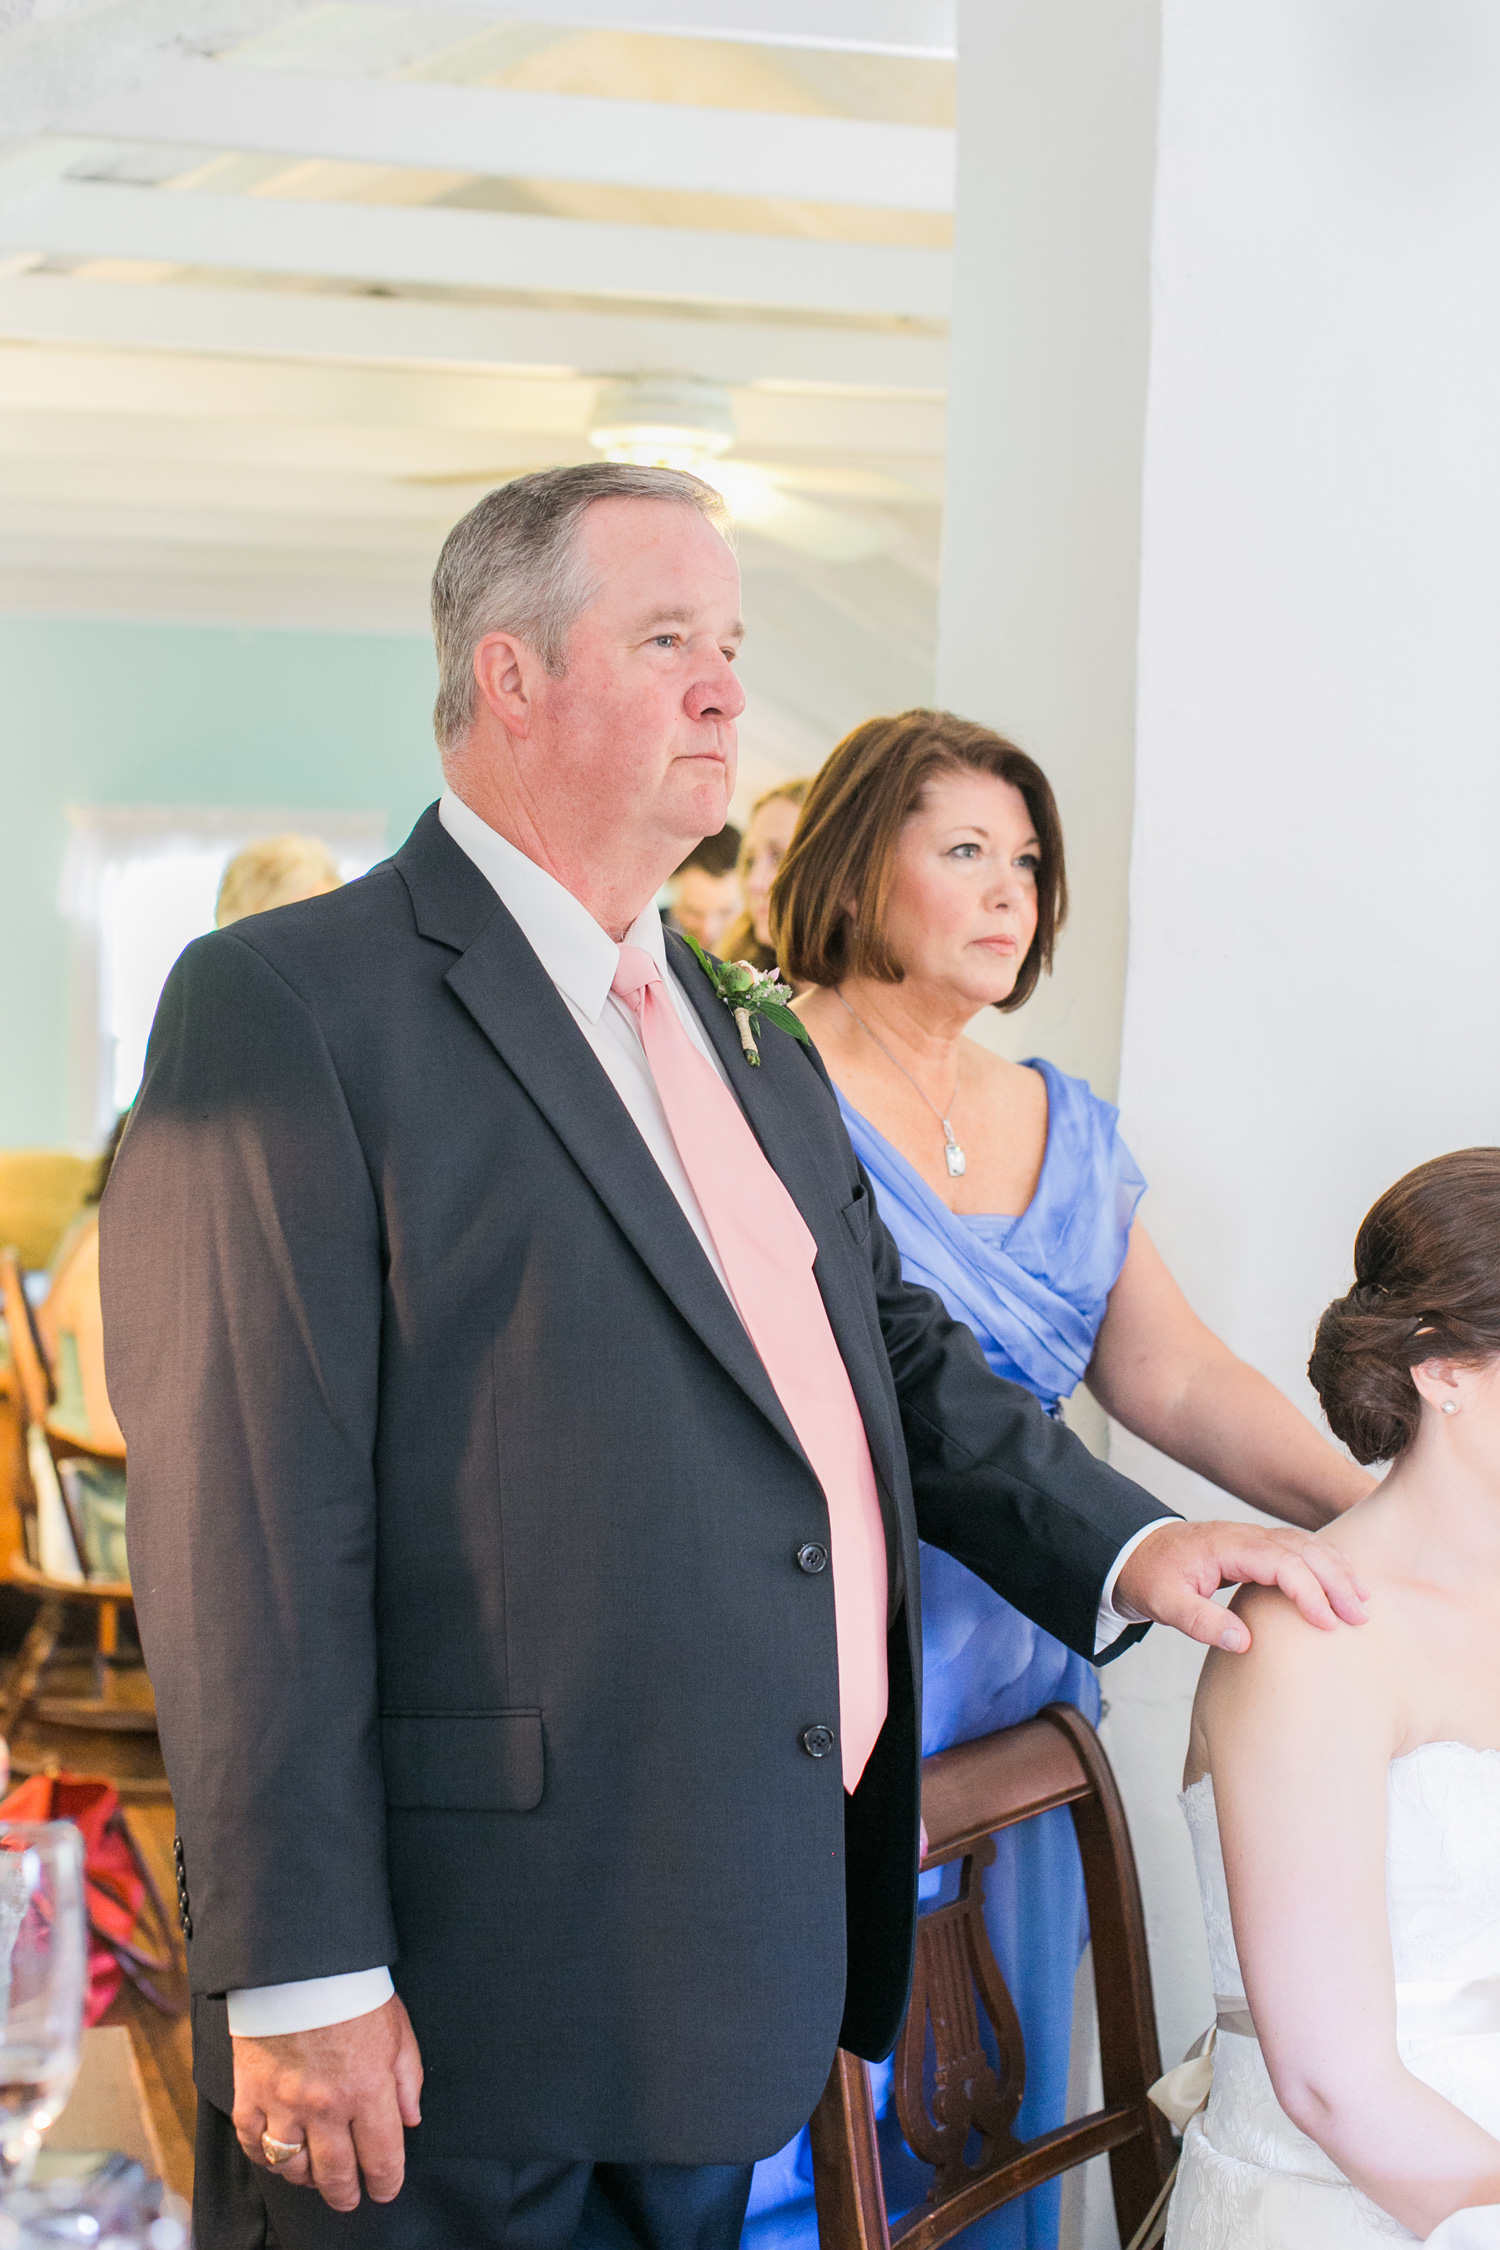 054-jewish-wedding-photography-northern-virginia.jpg